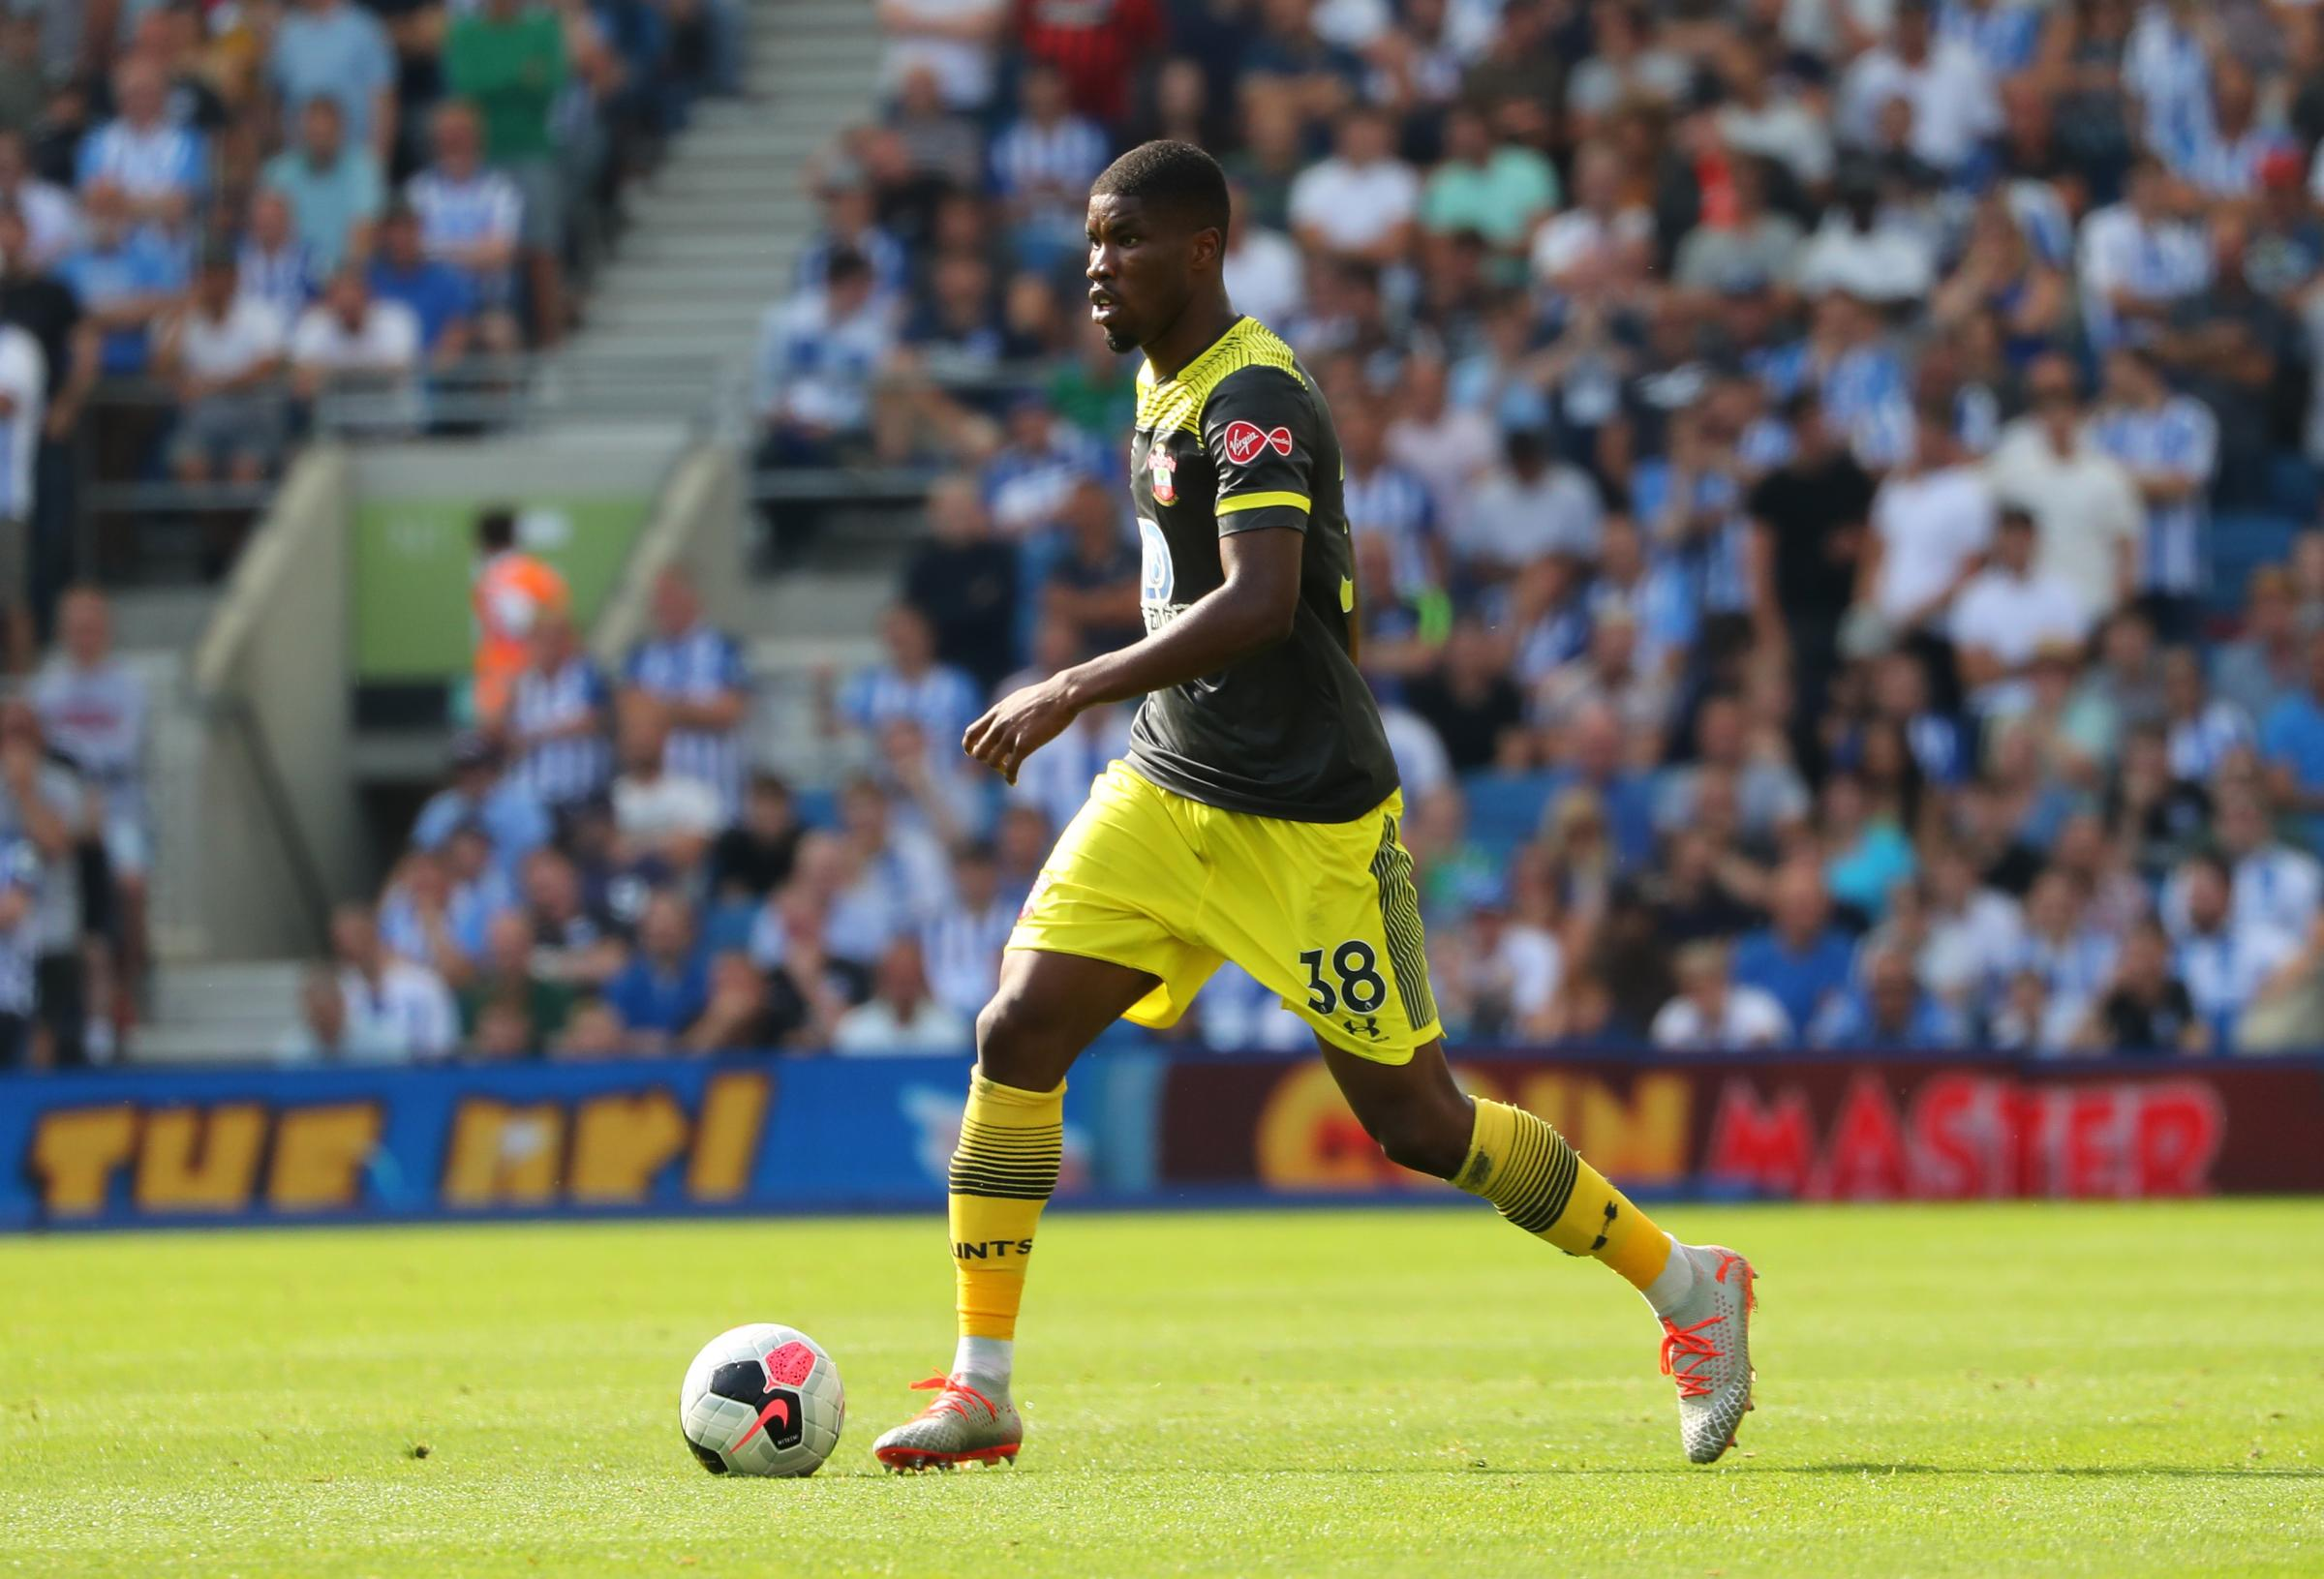 Kevin Danso opens up on his start to life at Southampton